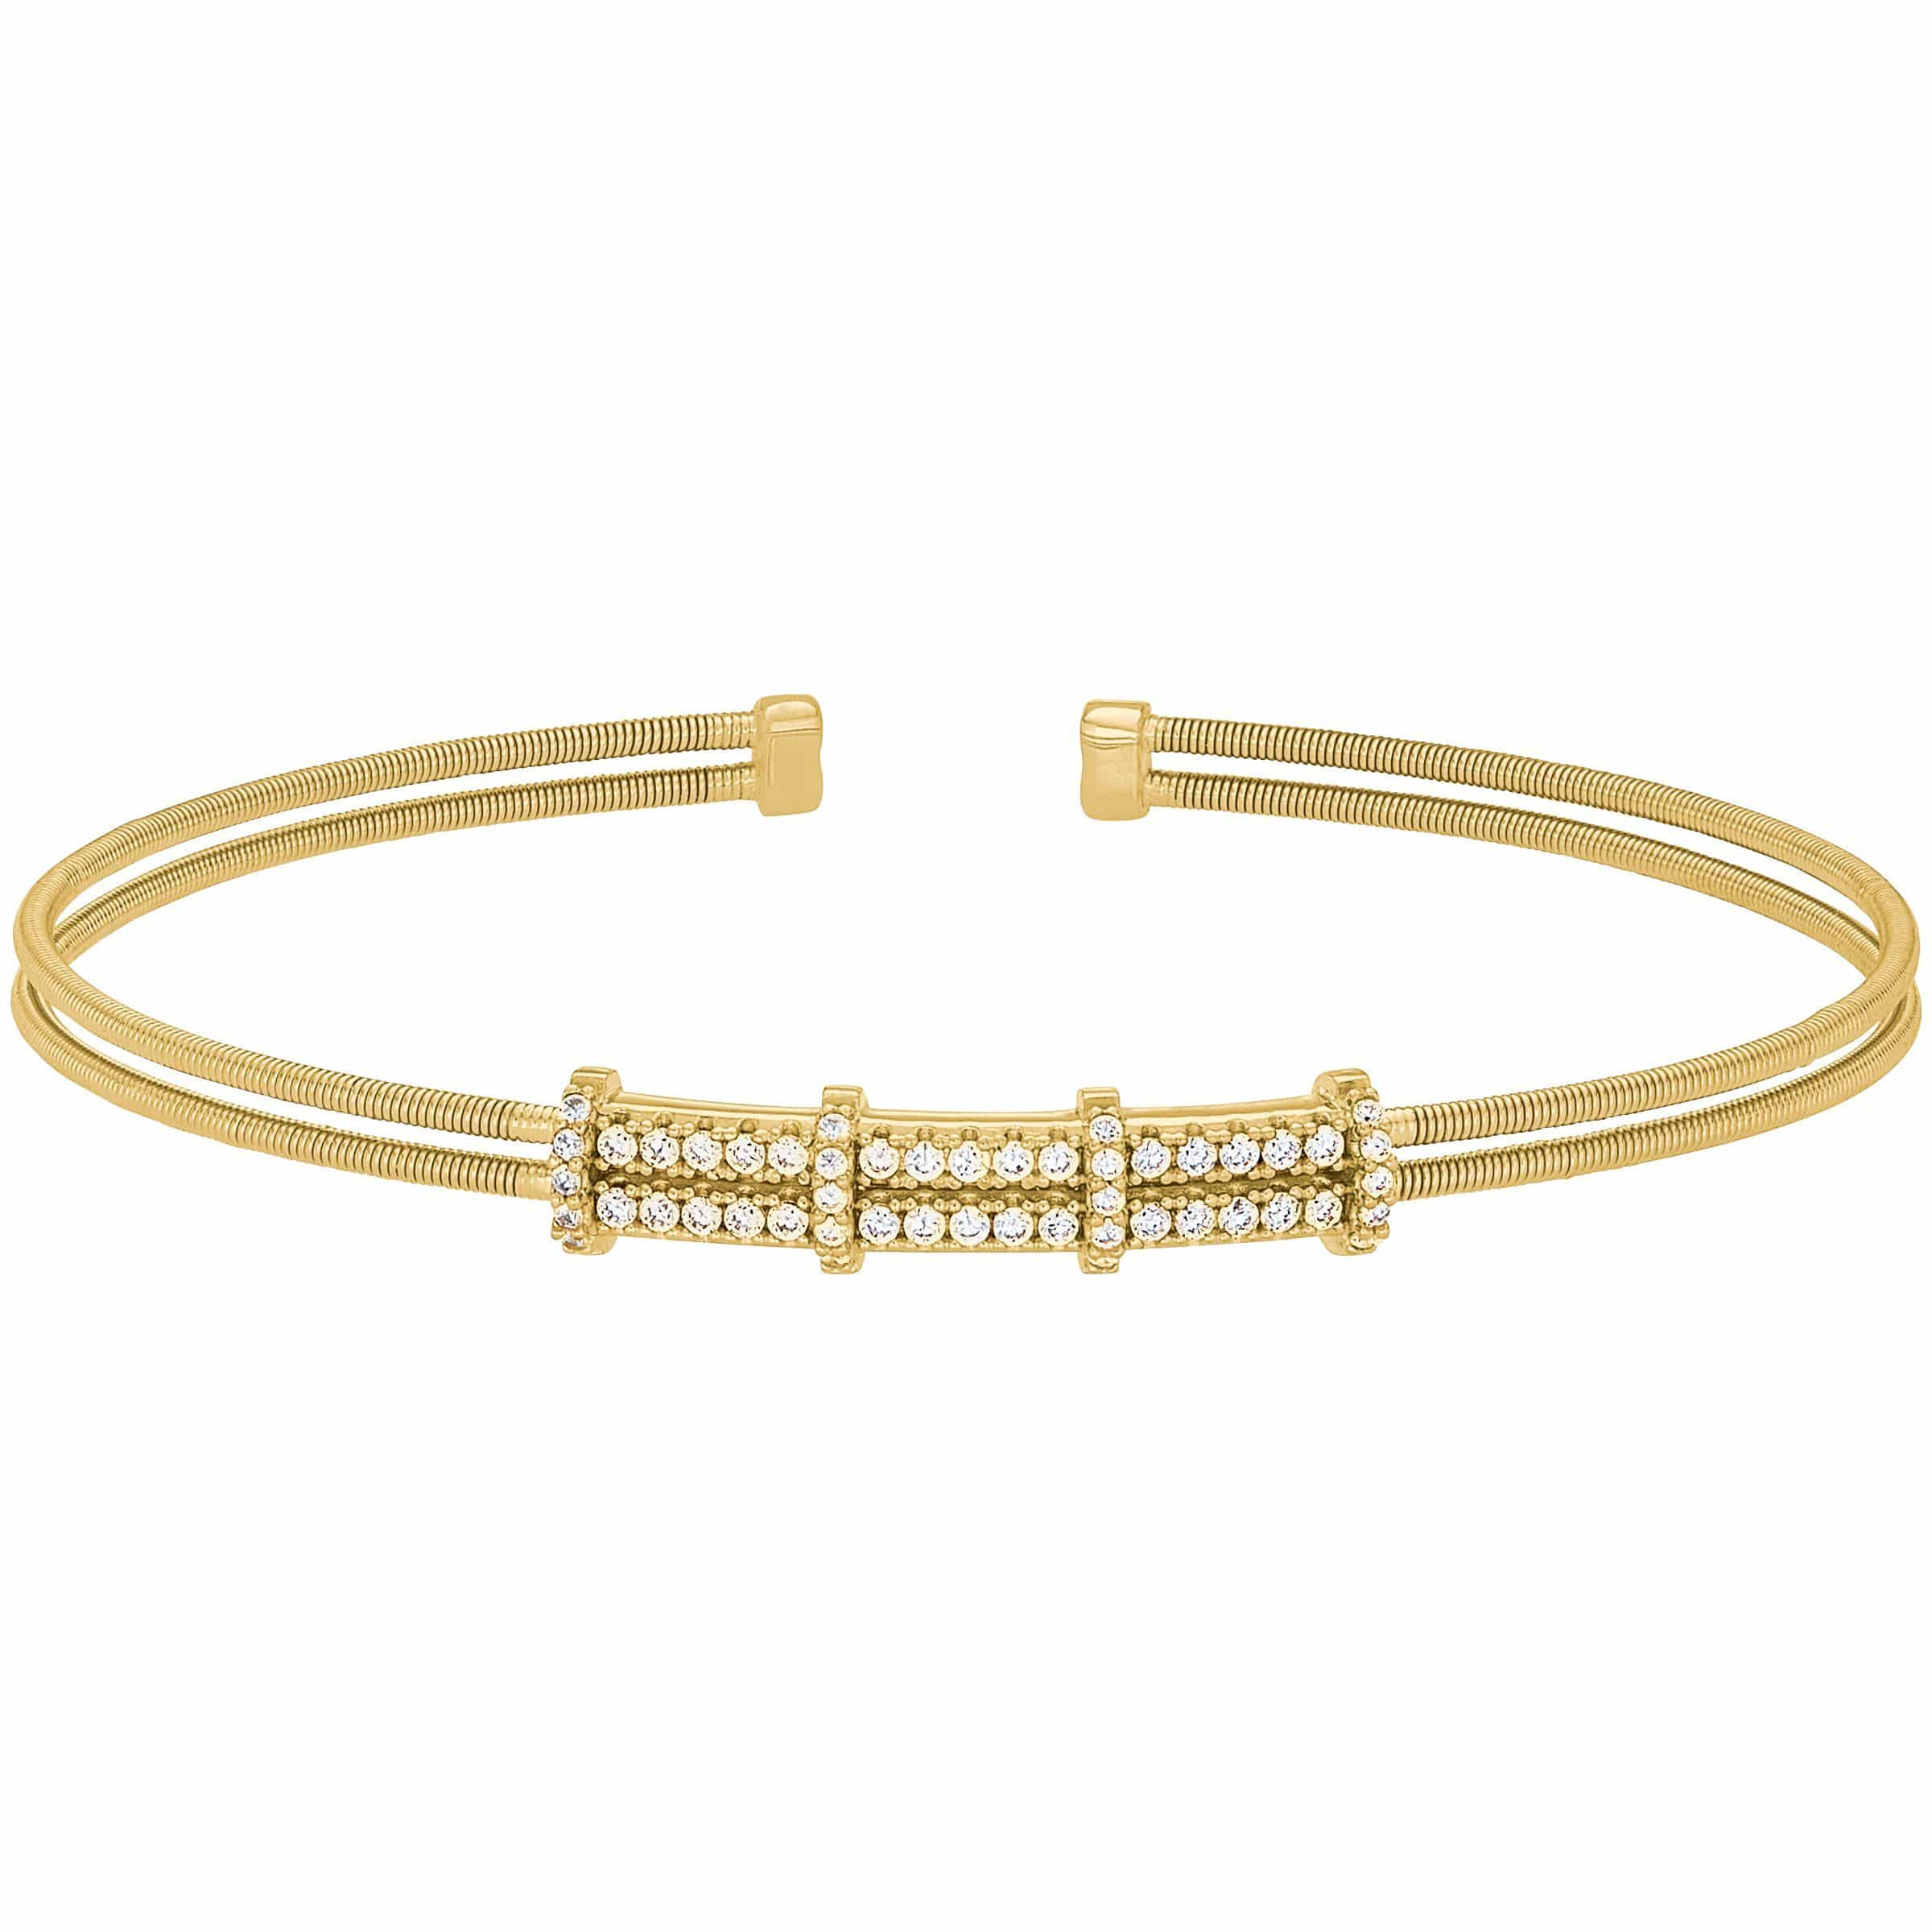 Gold Finish Sterling Silver Two Cable Cuff Bracelet - LL7077B-G-Kelly Waters-Renee Taylor Gallery